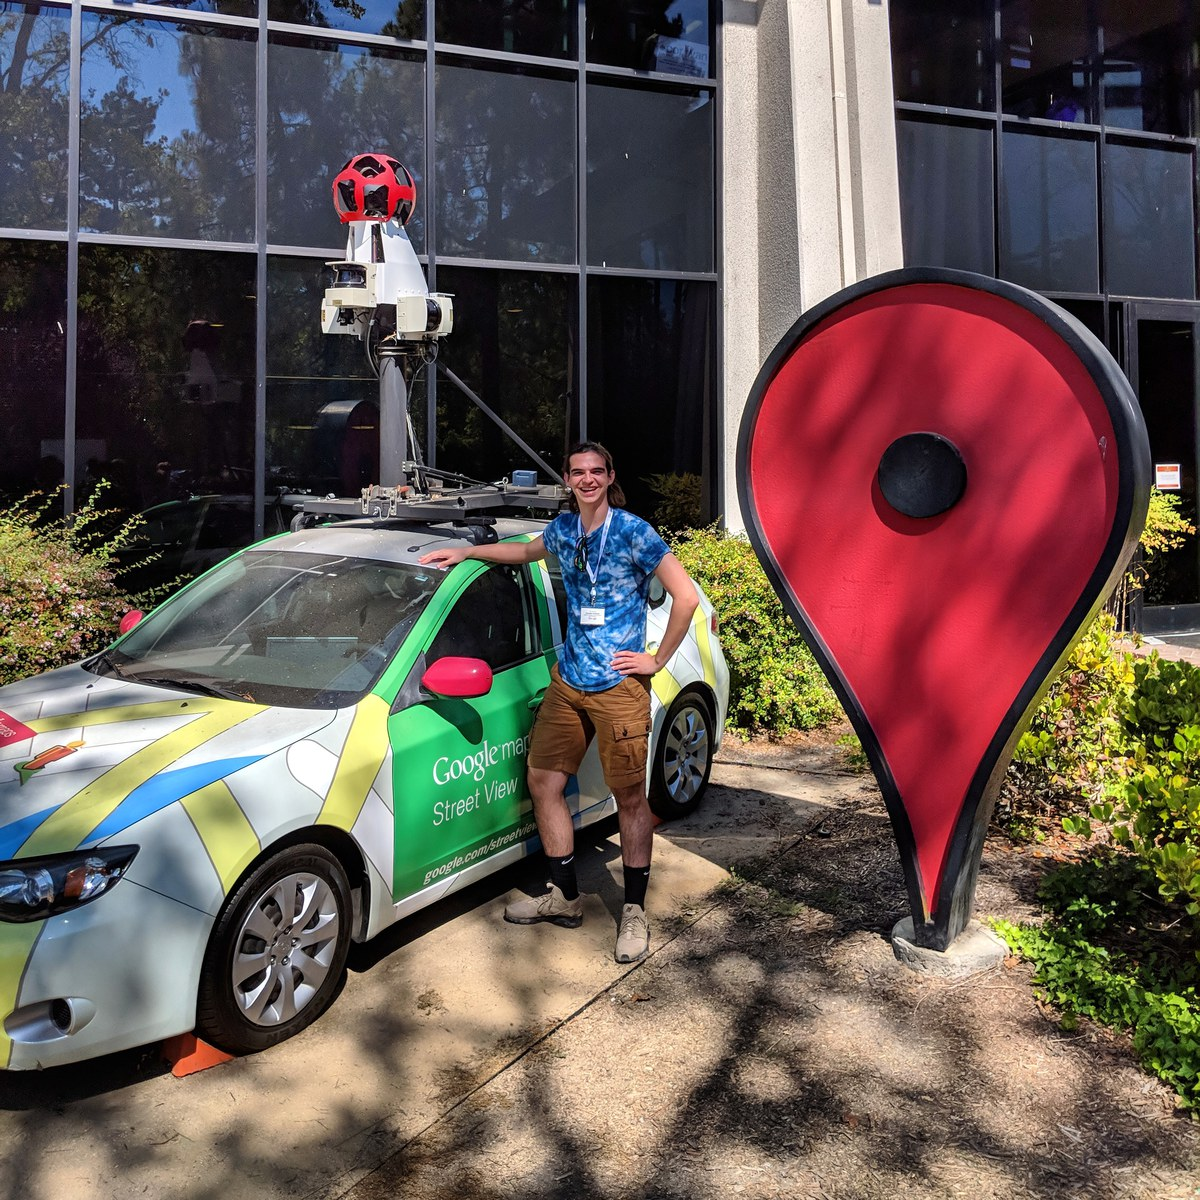 Dresden Kershaw at Google Headquarters in Silicon Valley